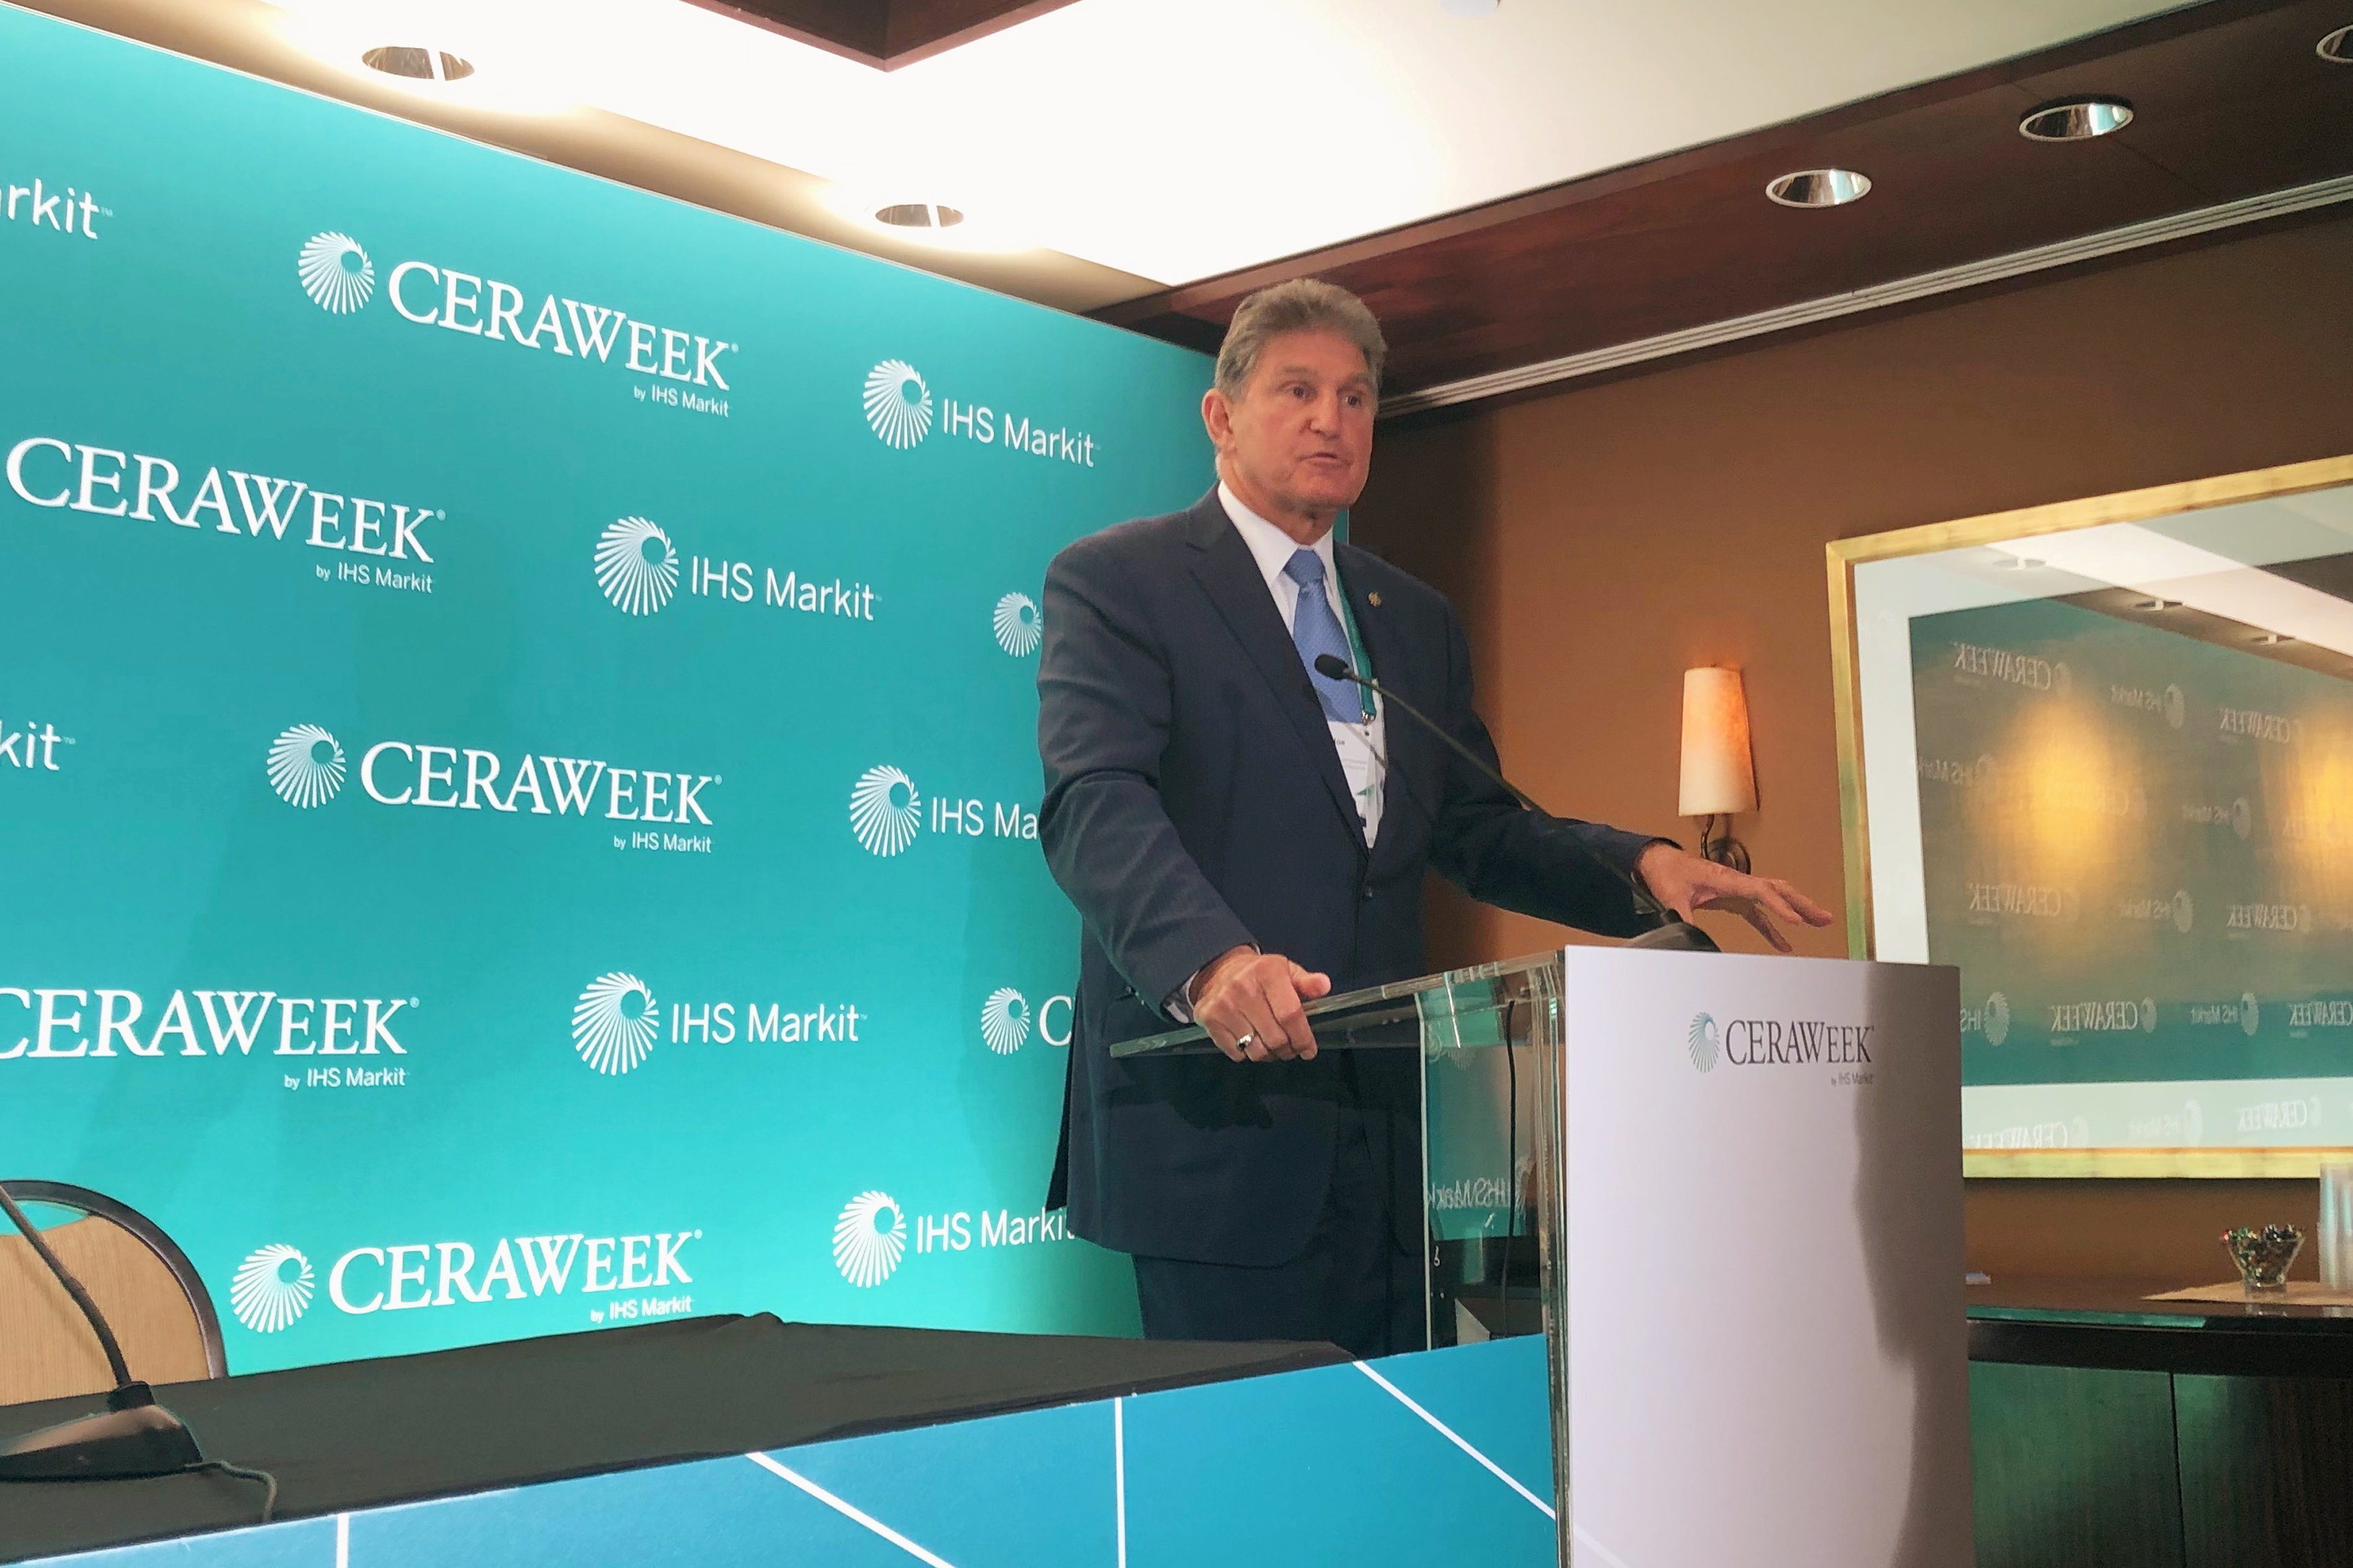 U.S. Senator Joe Manchin (D-WV), speaks with reporters about U.S. energy policy and climate change at the IHS Markit CERAWeek conference in Houston, Texas, U.S., March 11, 2019.  REUTERS/David Gaffen